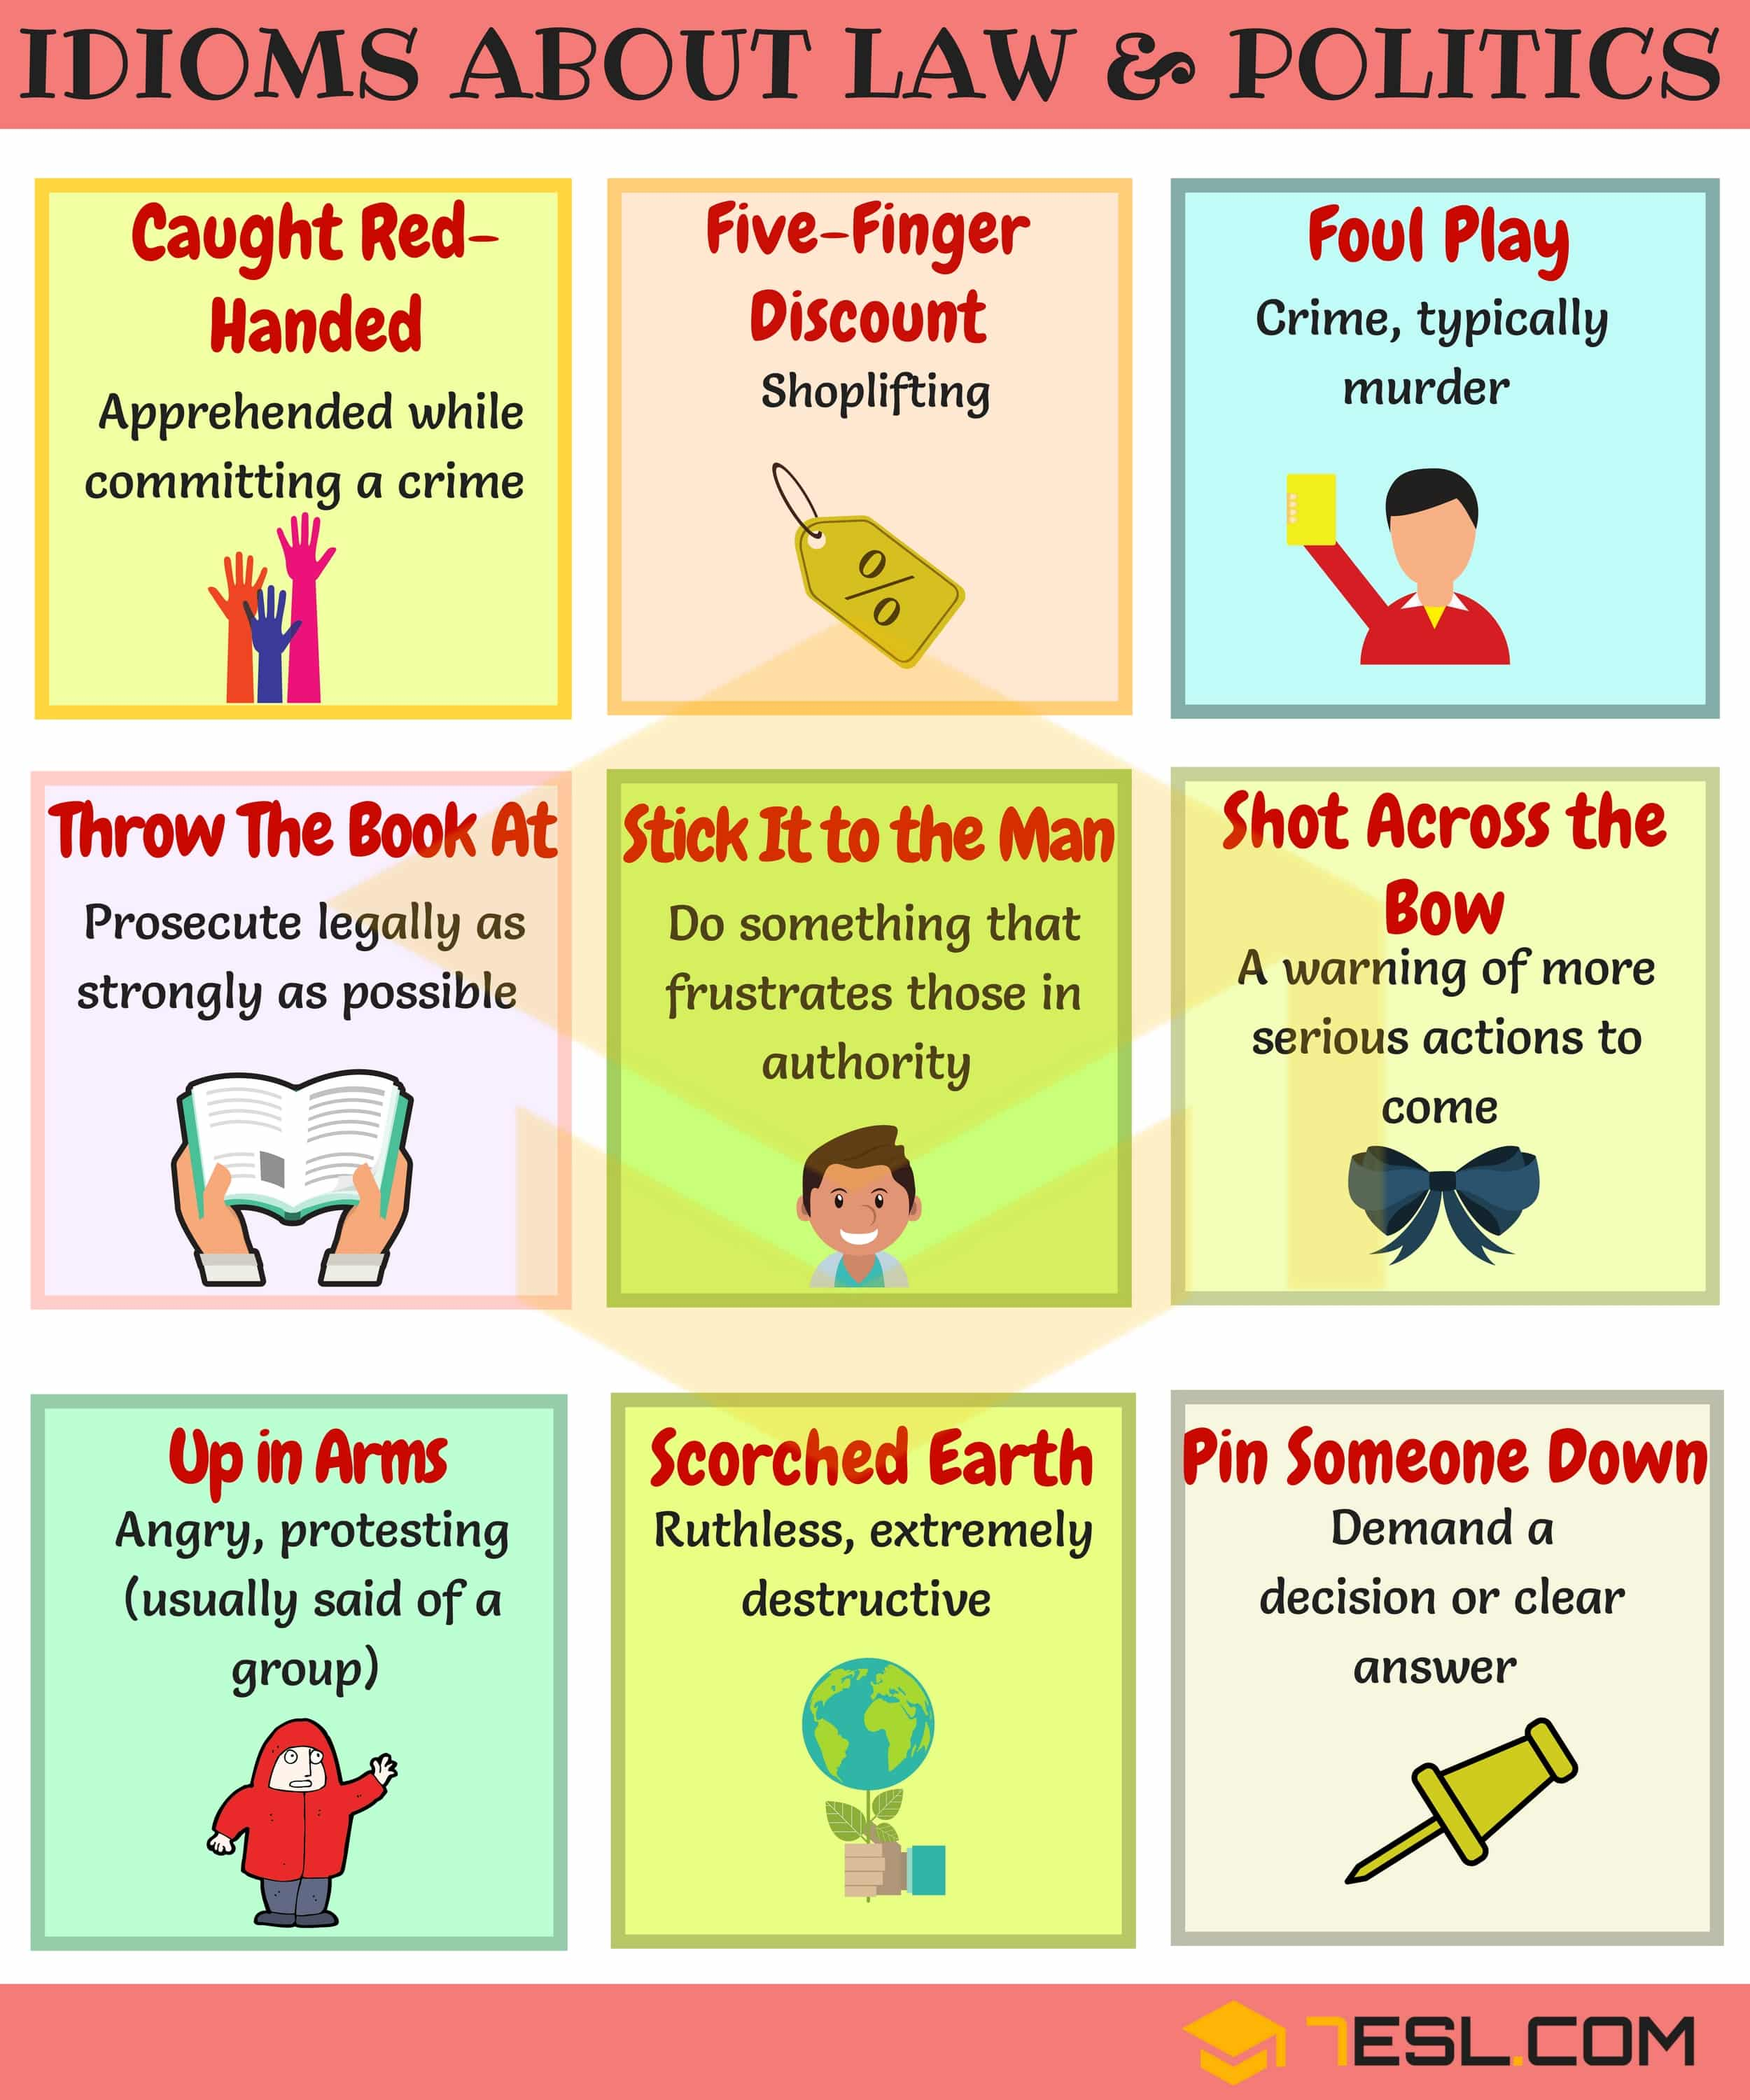 Useful Idioms About Law And Politics In English